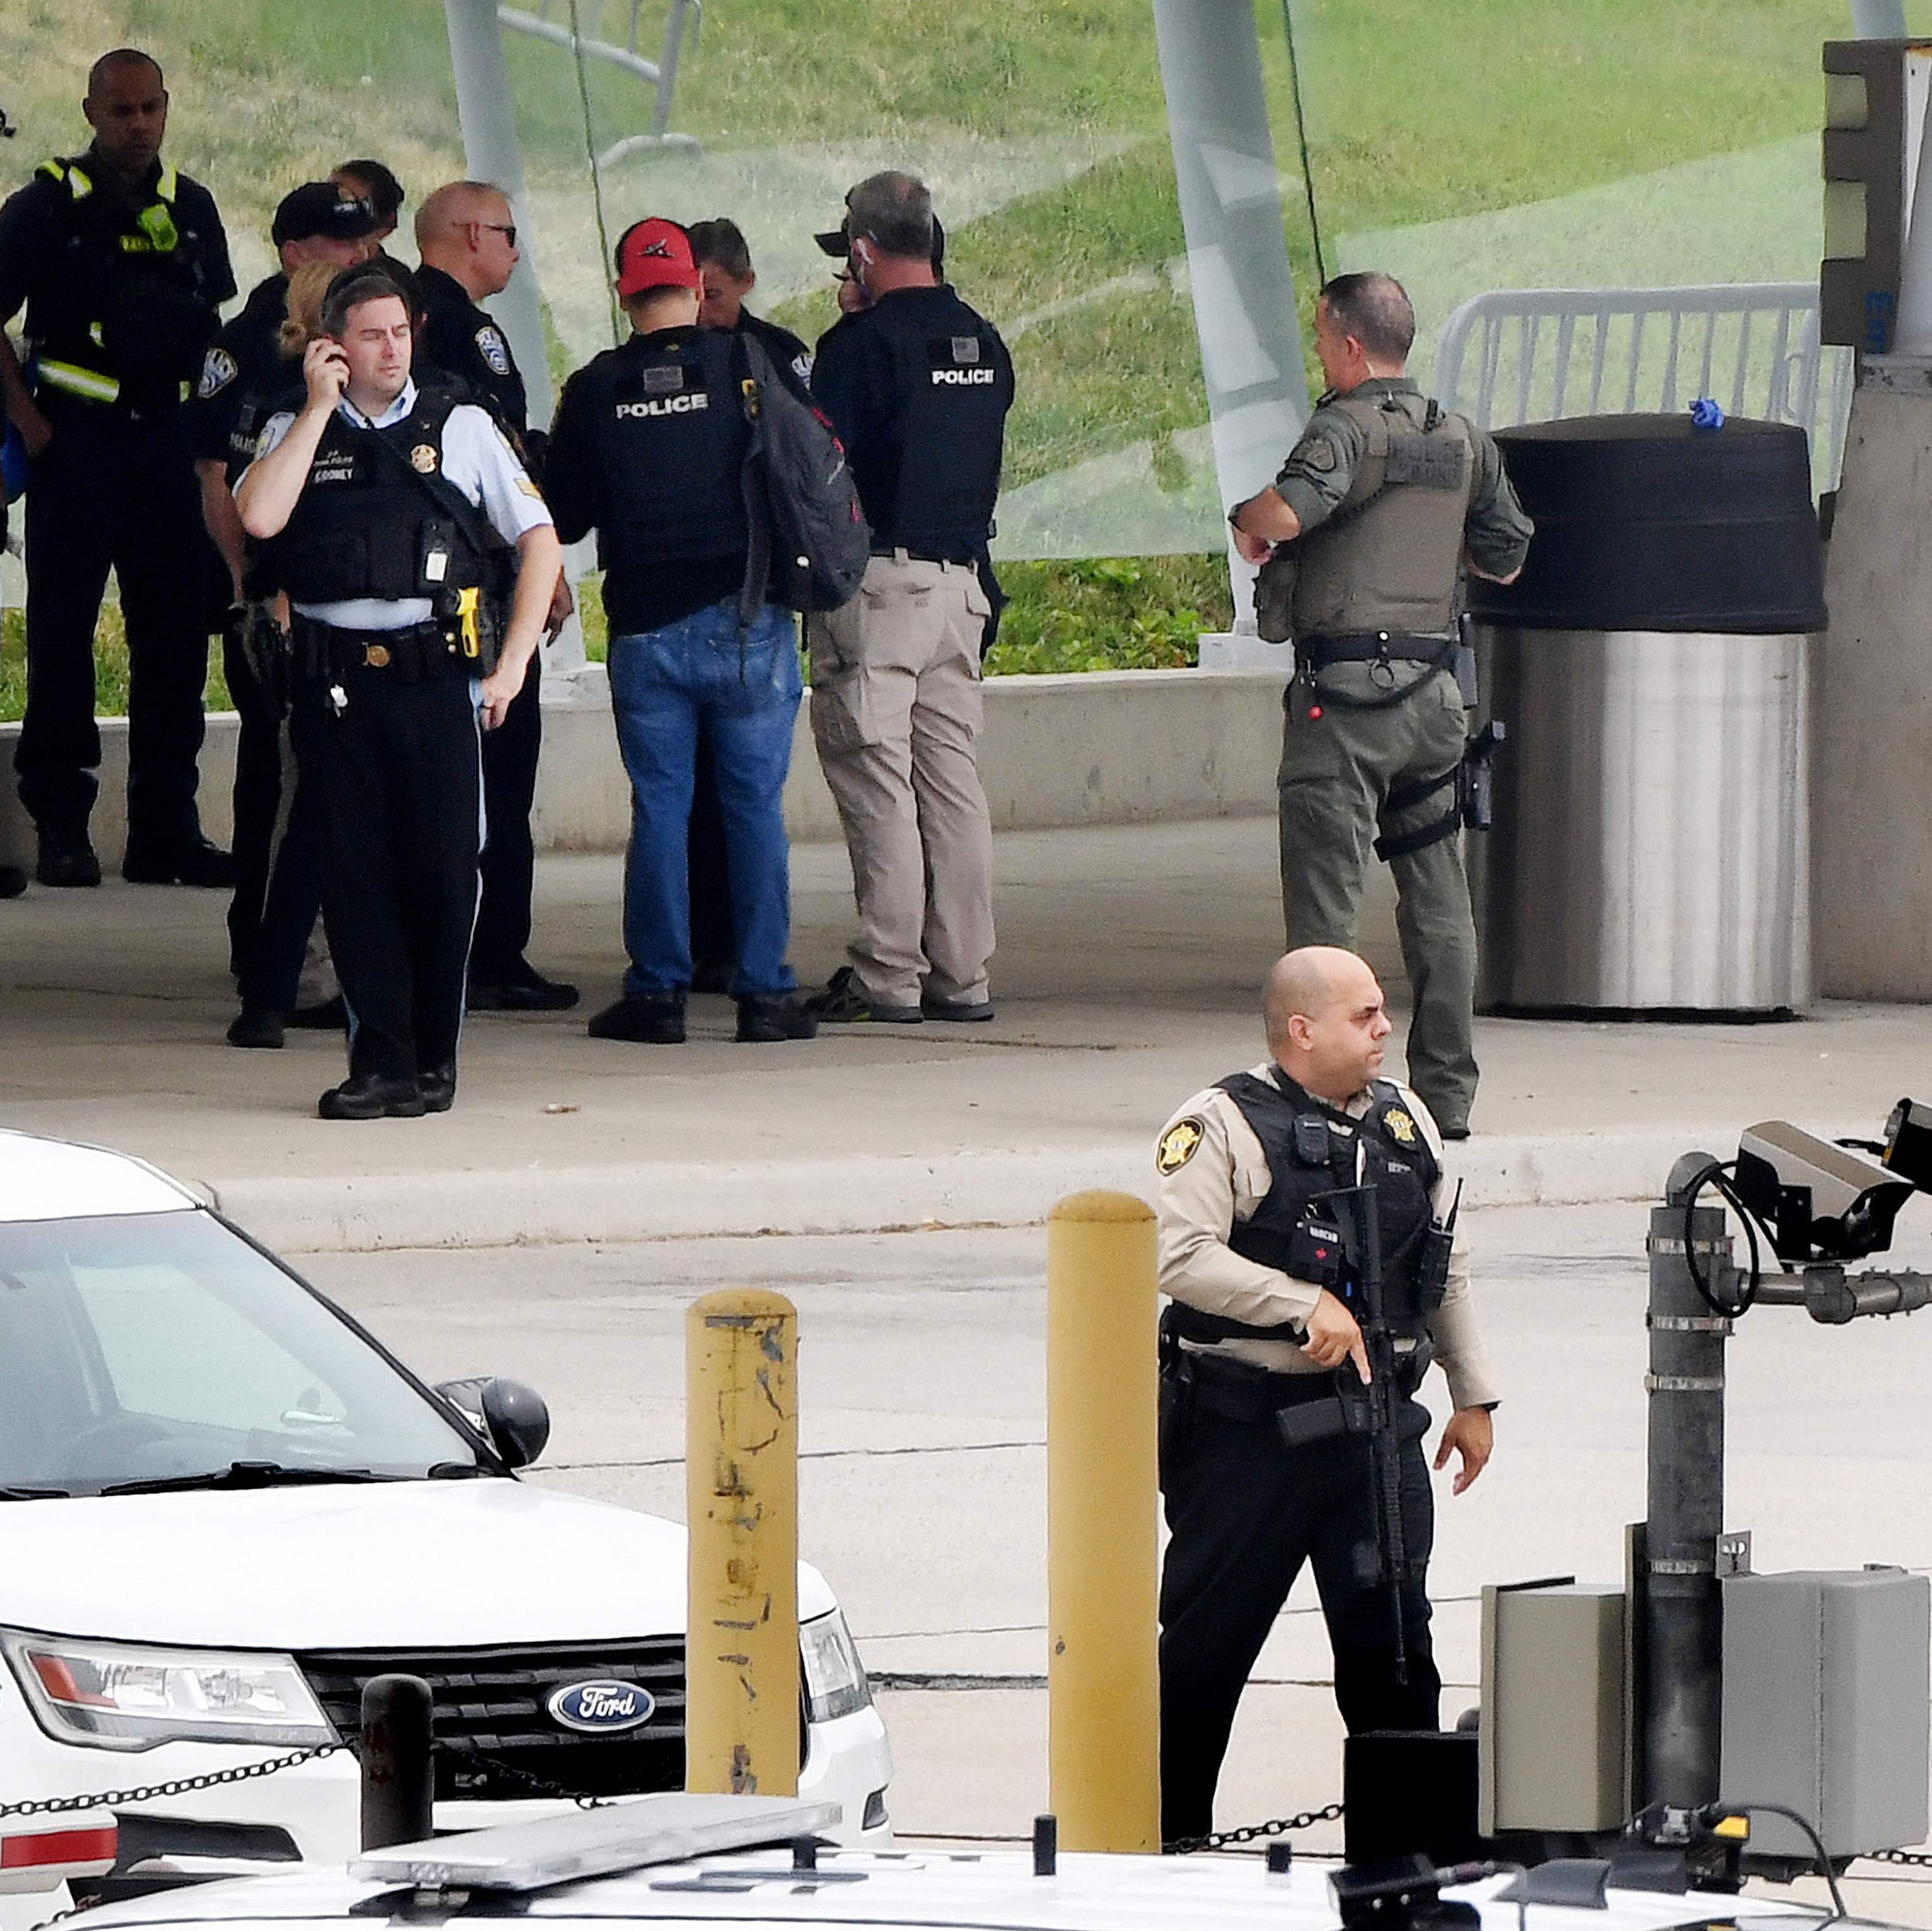 Officer attacked at transit station near Pentagon, leads to lockdown and multiple patients